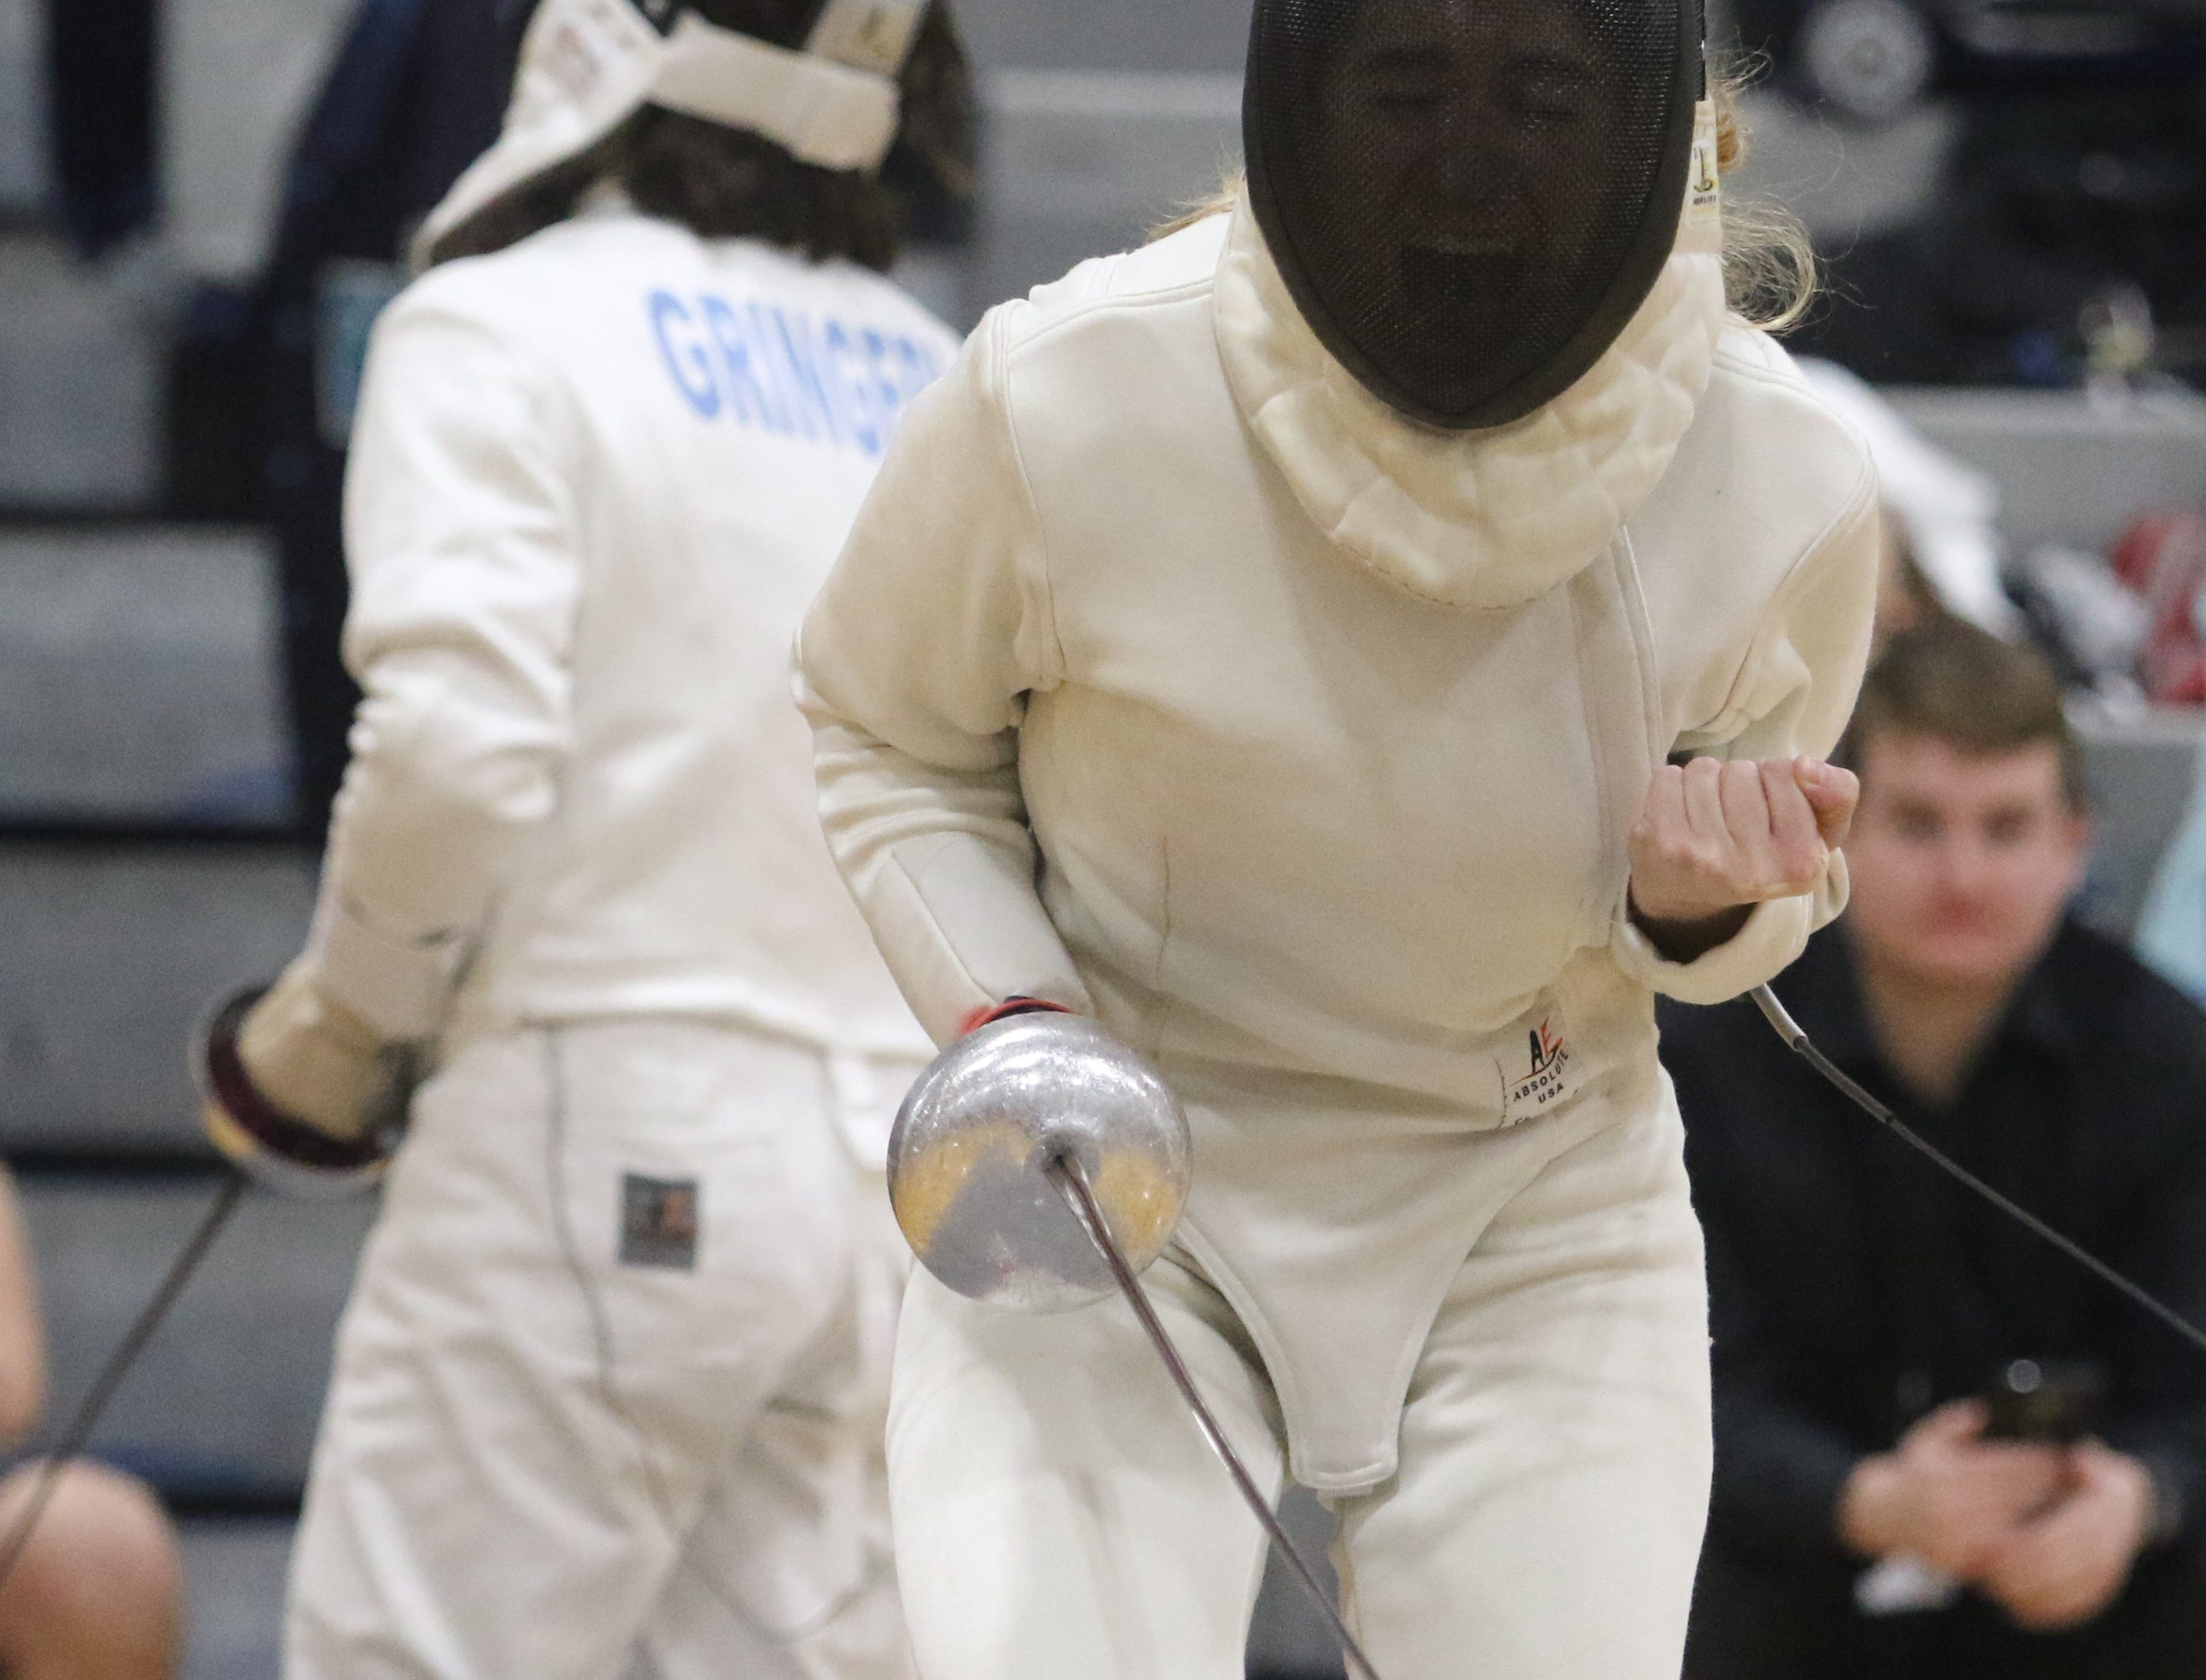 Alexandra Szwec of Morris Hills celebrates a point against Abigail Gringeri of Morristown in the epee final.